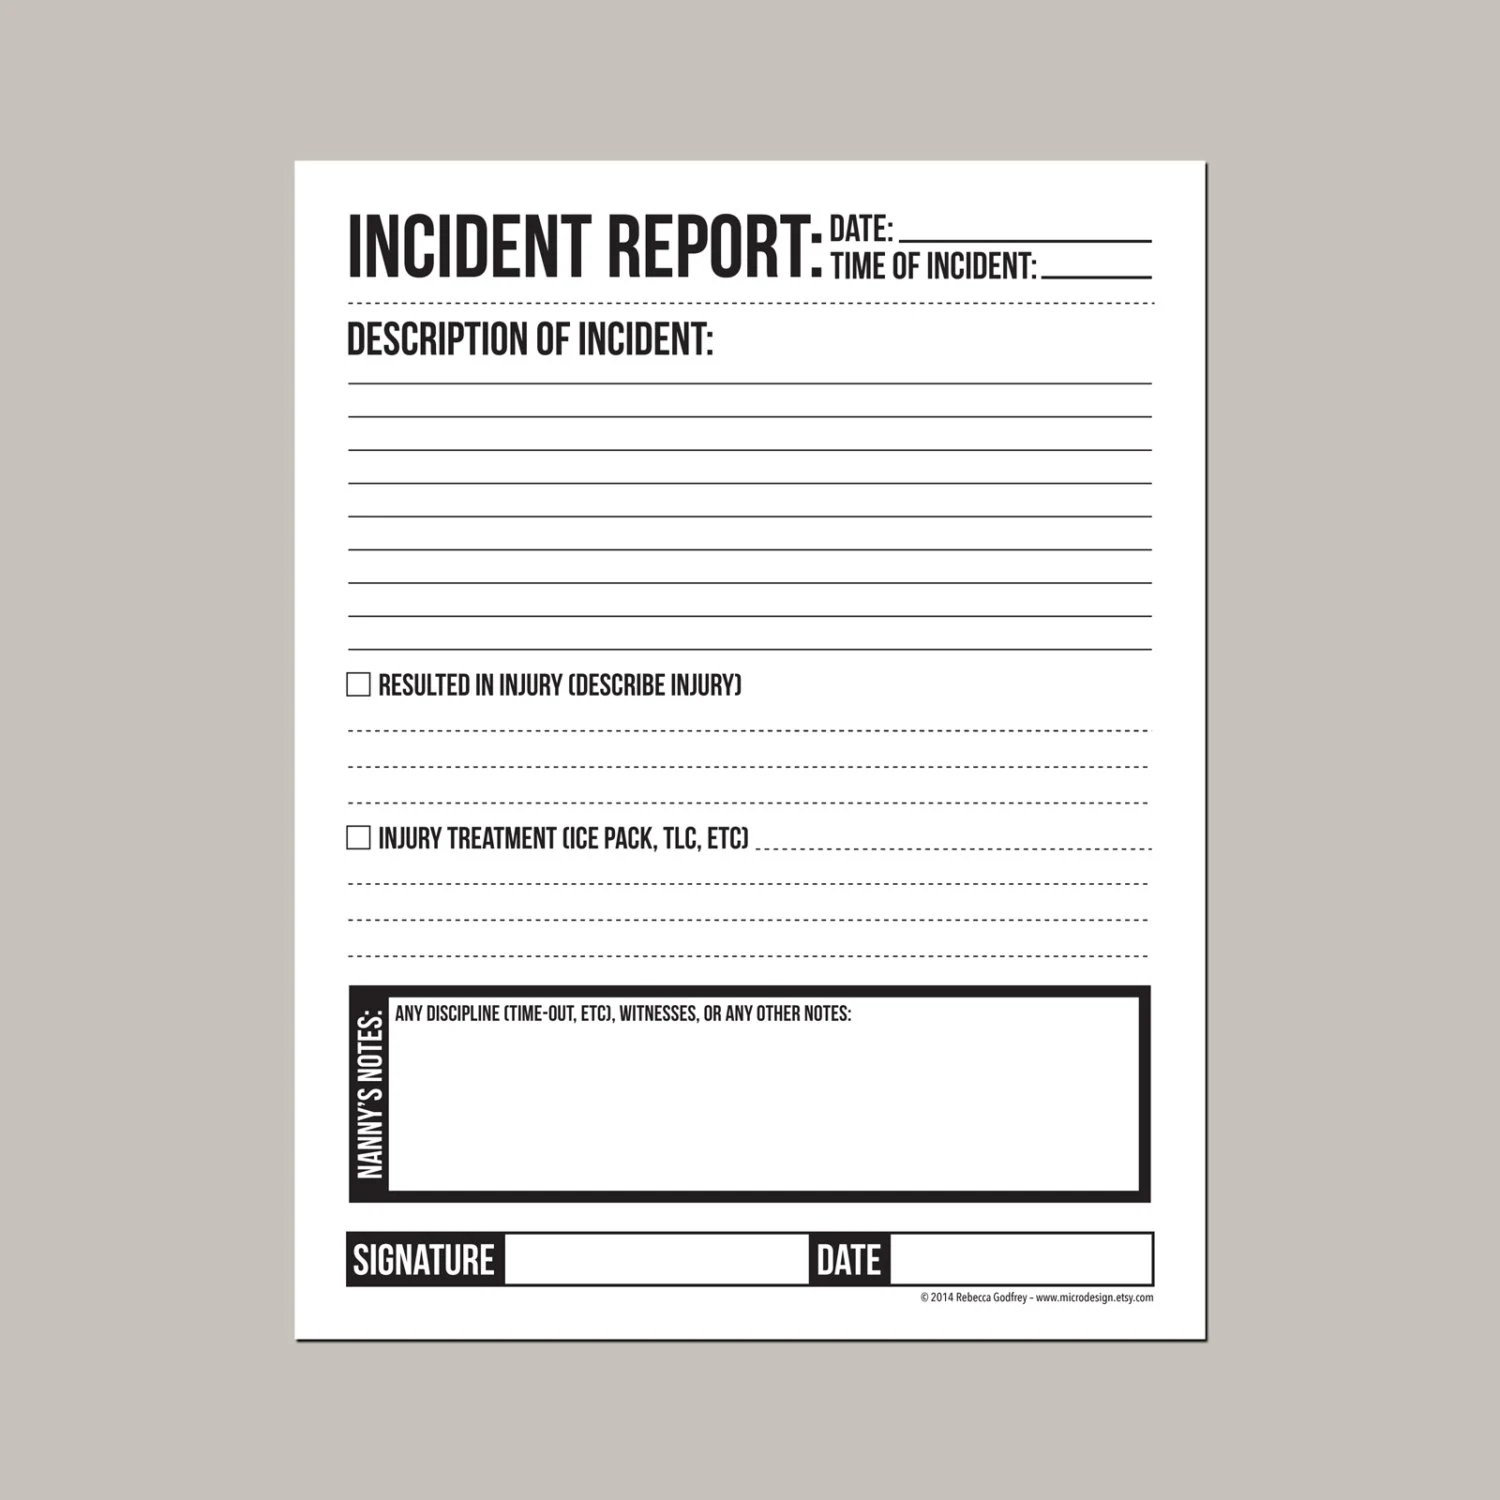 Incident report for nanny or daycare worker Etsy